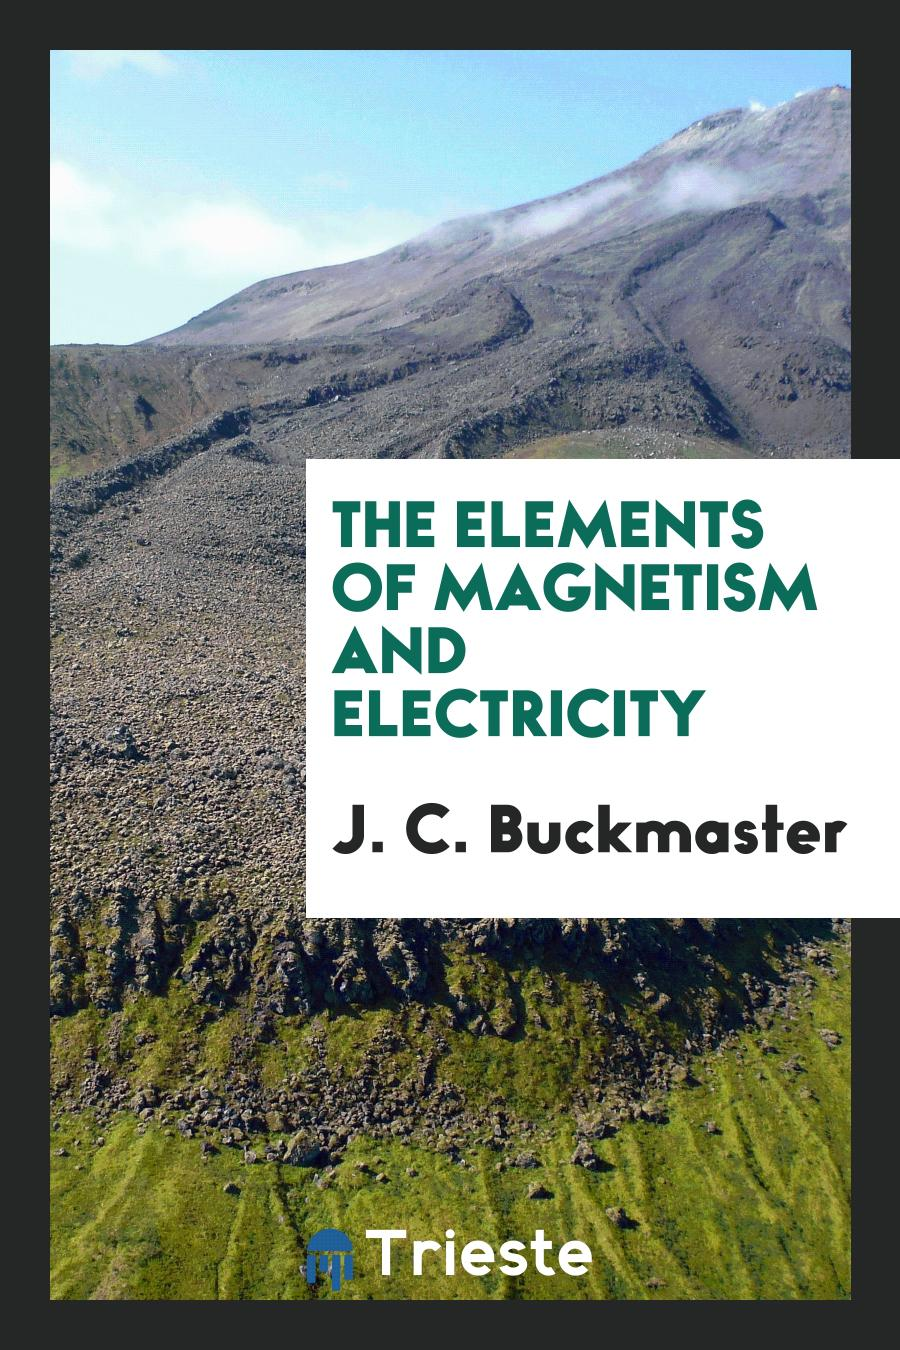 The Elements of Magnetism and Electricity